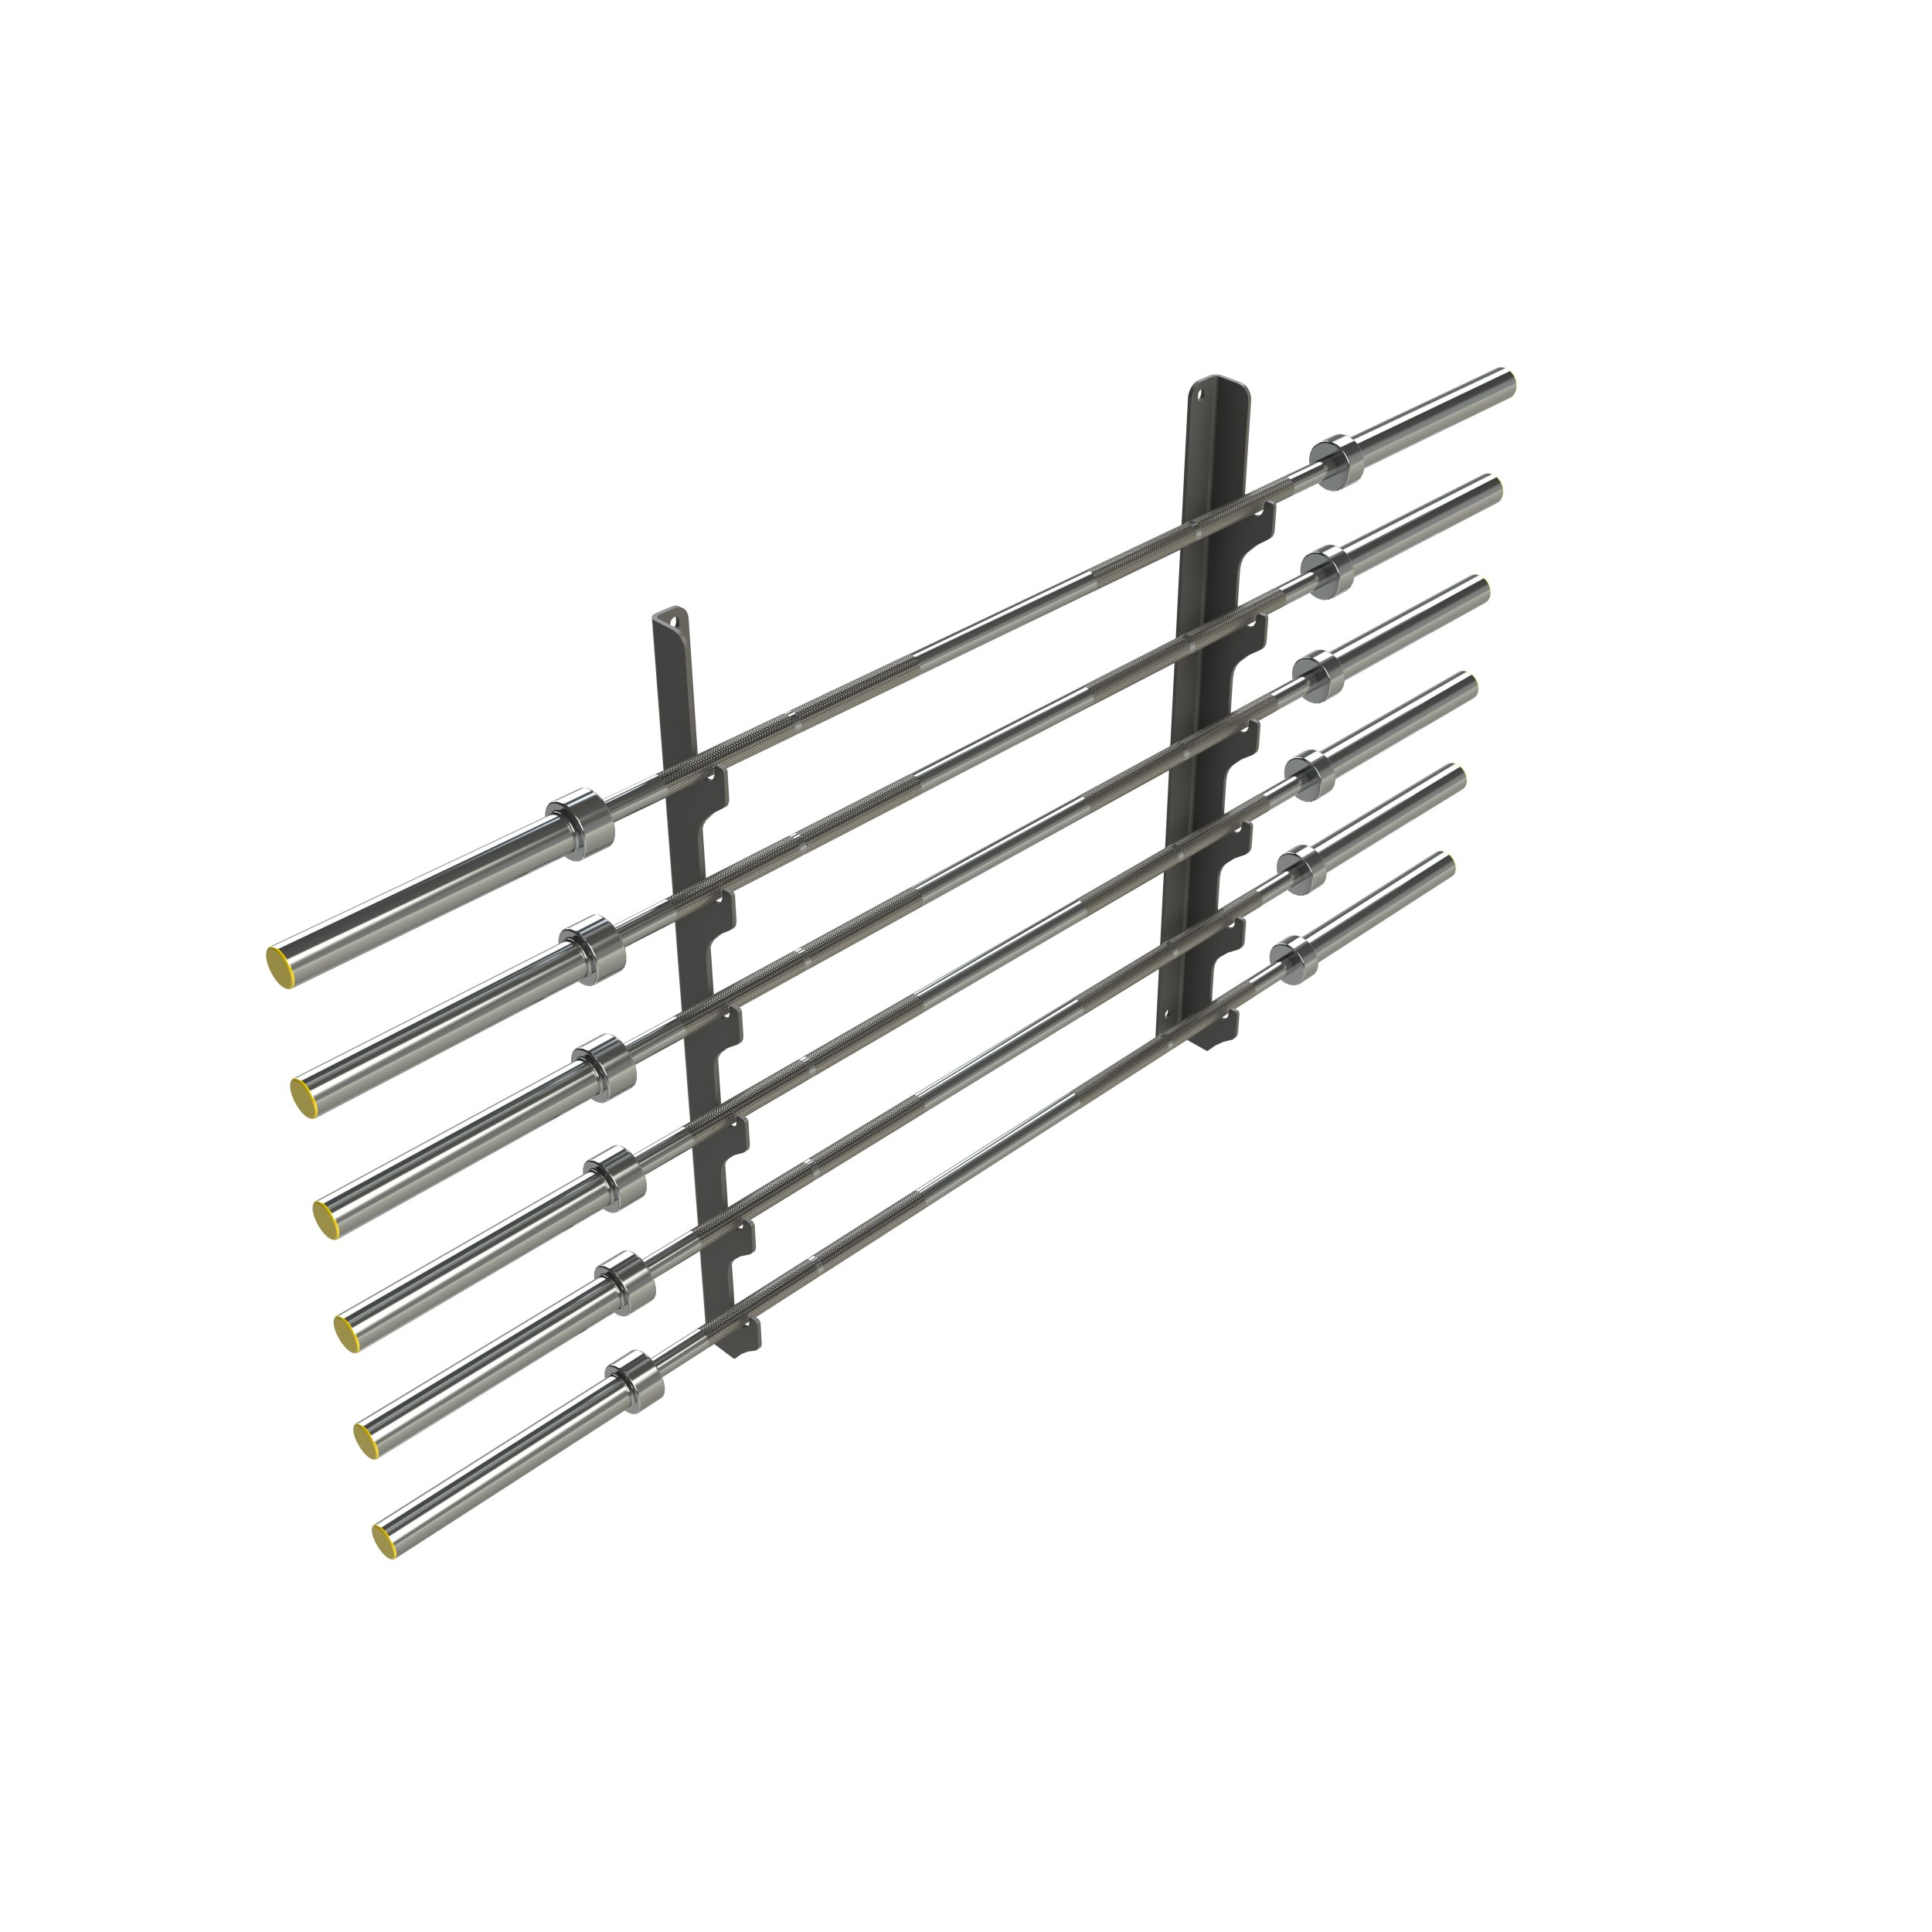 Horizontal Wall Gun Rack (6 Bars)